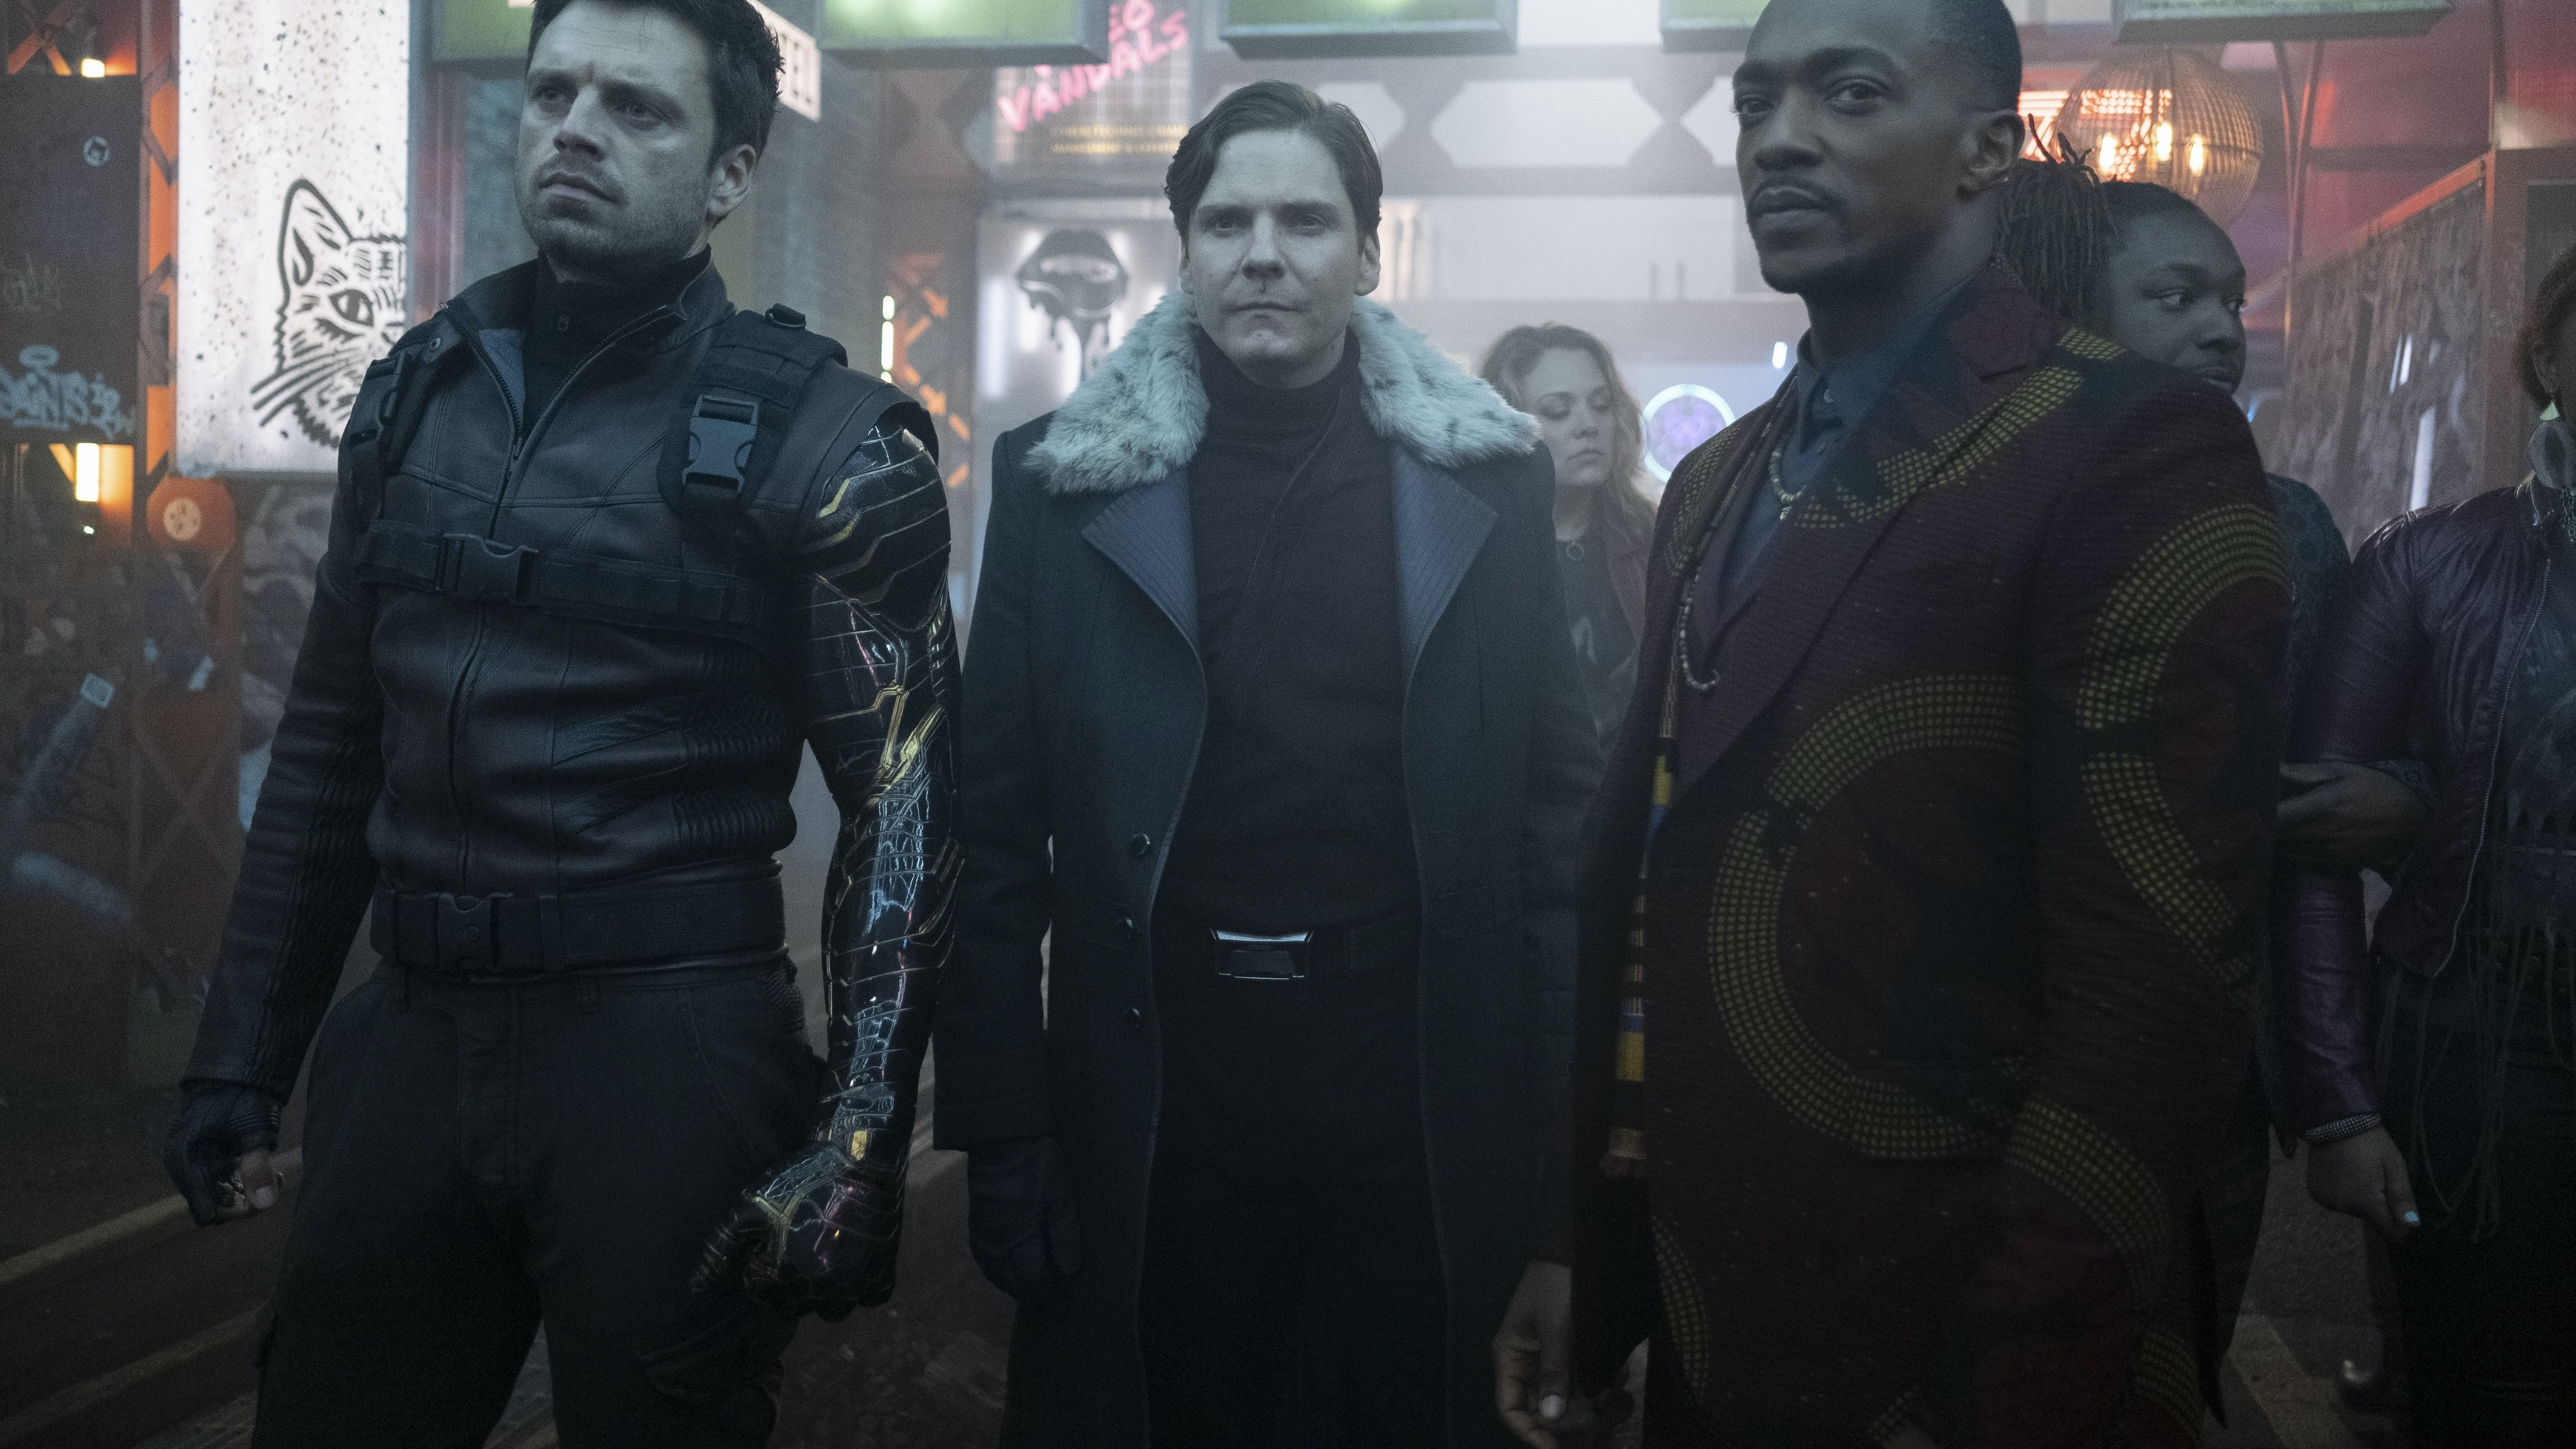 (L-R): Winter Soldier/Bucky Barnes (Sebastian Stan), Zemo (Daniel Brühl) and Falcon/Sam Wilson (Anthony Mackie) in Marvel Studios' THE FALCON AND THE WINTER SOLDIER exclusively on Disney+. Photo by Chuck Zlotnick. ©Marvel Studios 2021. All Rights Reserved.